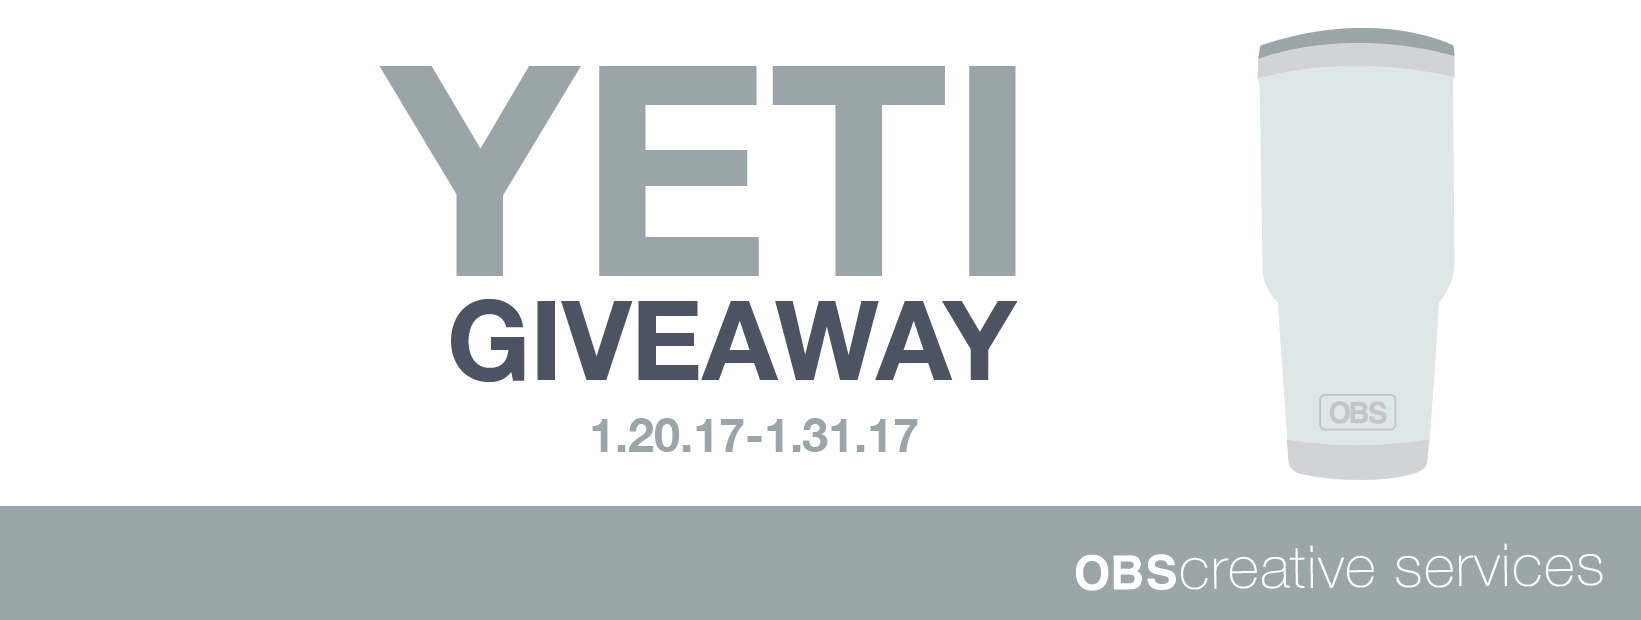 OBS Yeti Giveaway Facebook Header@144x-8.png